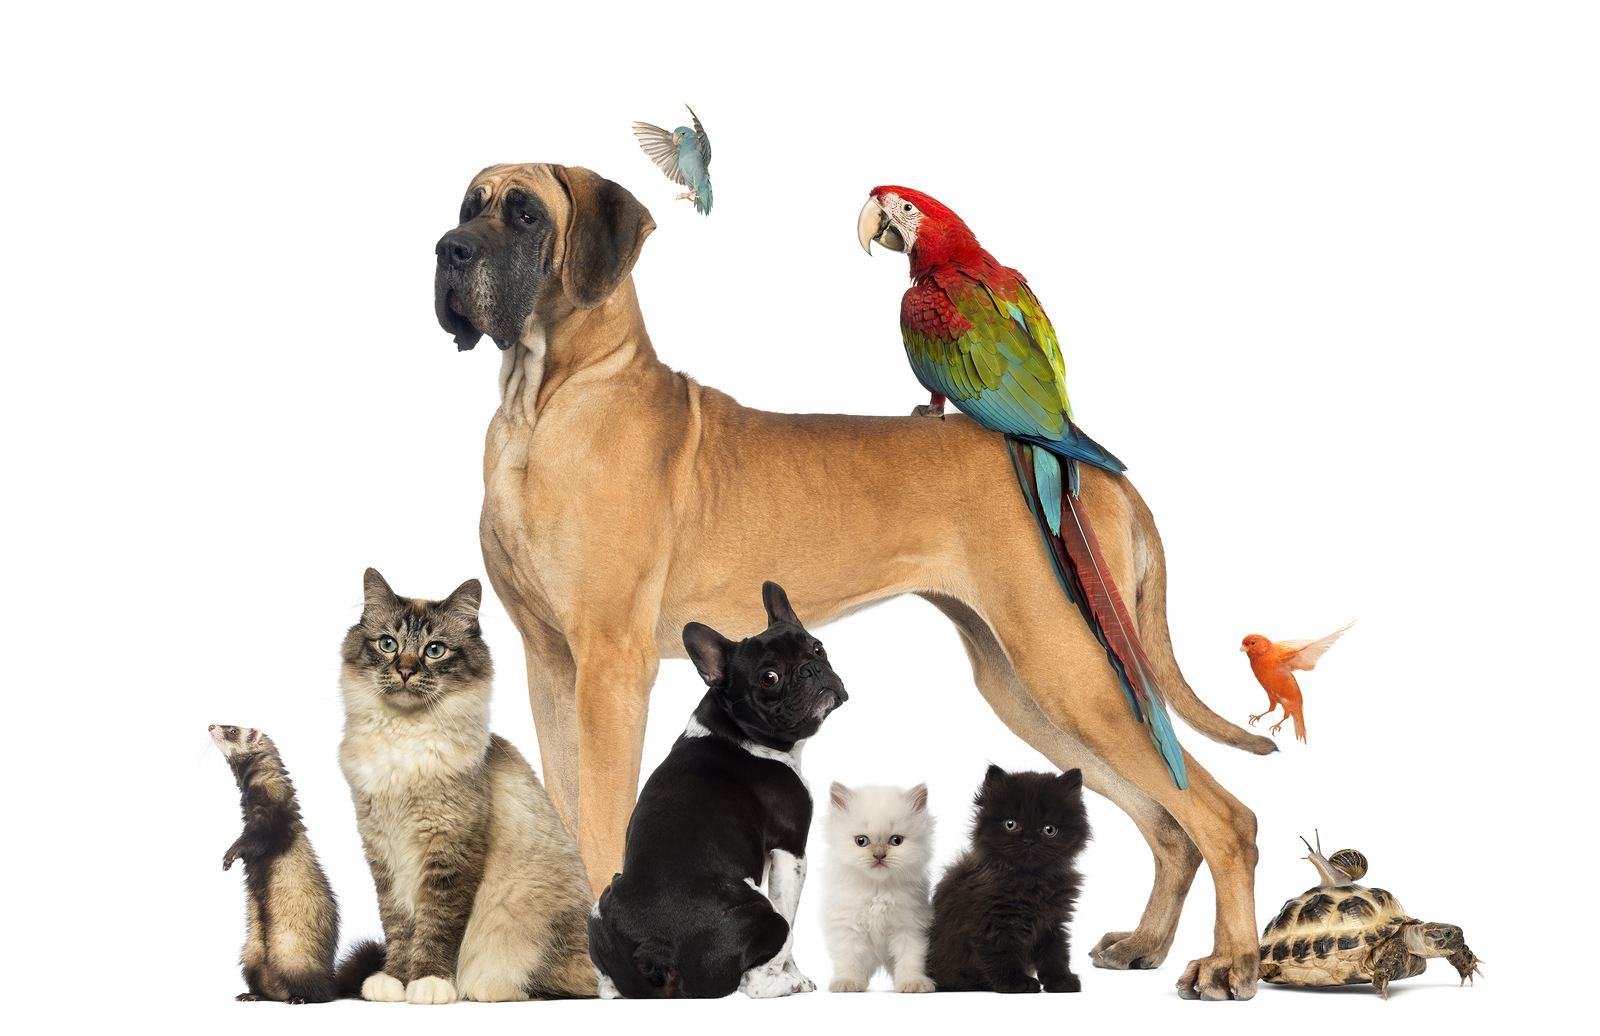 Dogs, cats, birds, ferret, tortoise and snail